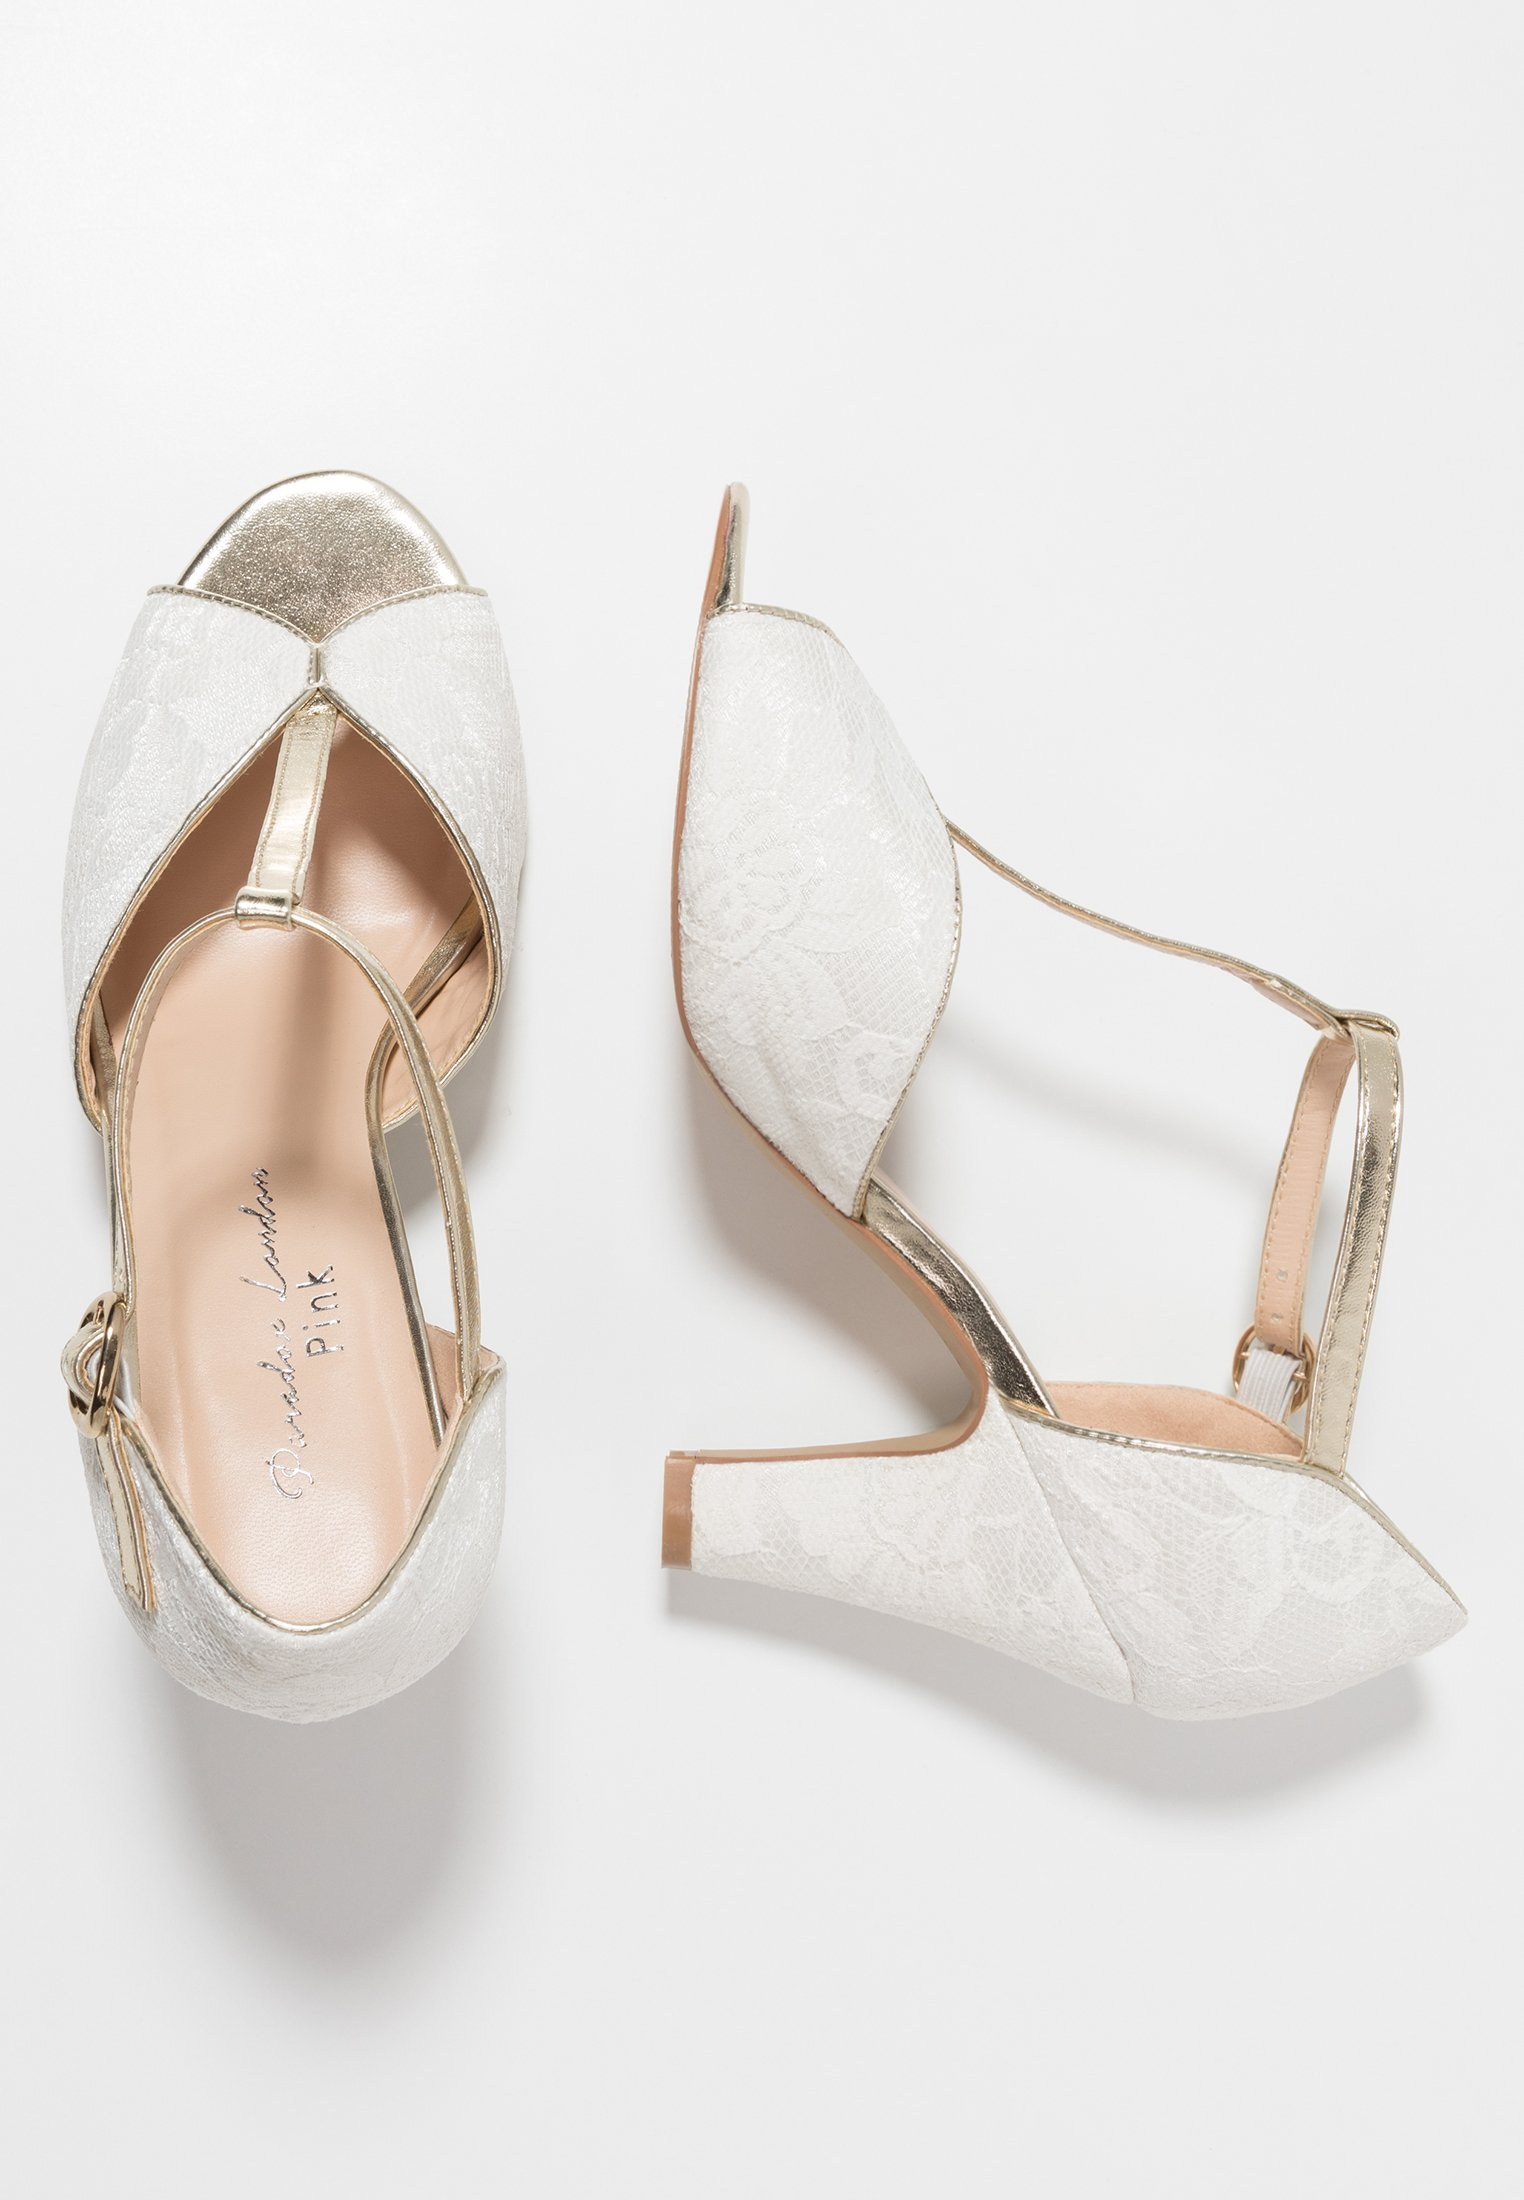 Paradox London Pink Quentin - Peeptoes Ivory